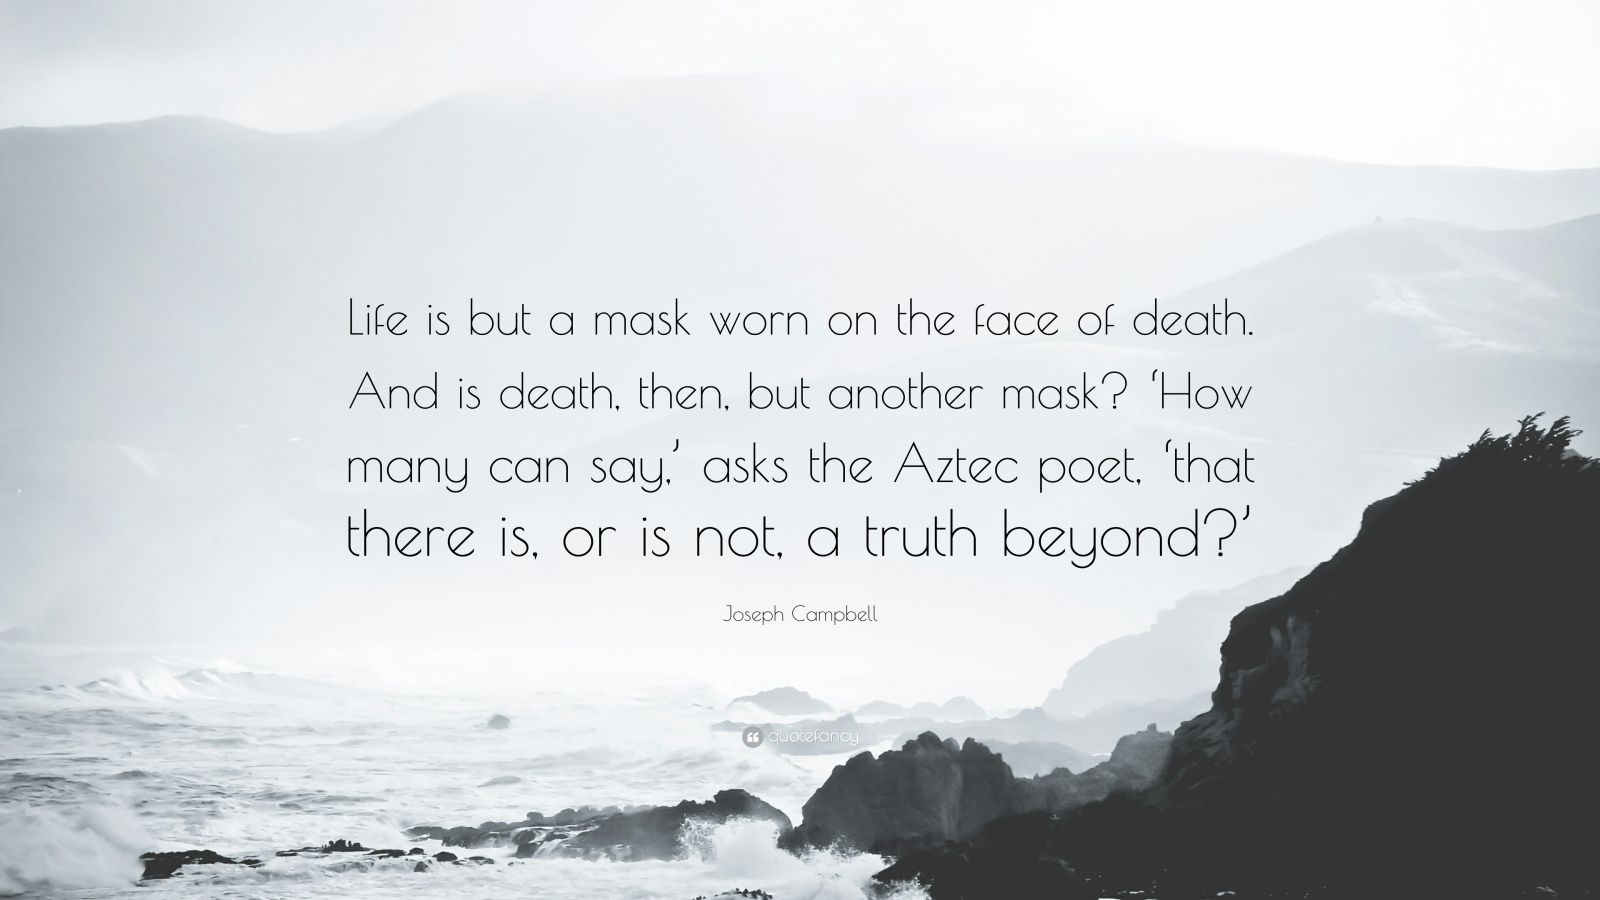 """Joseph Campbell Quote: """"Life is but a mask worn on the face of death. And is death, then, but another mask? 'How many can say,' asks the Aztec poet, 'that there is, or is not, a truth beyond?'"""""""